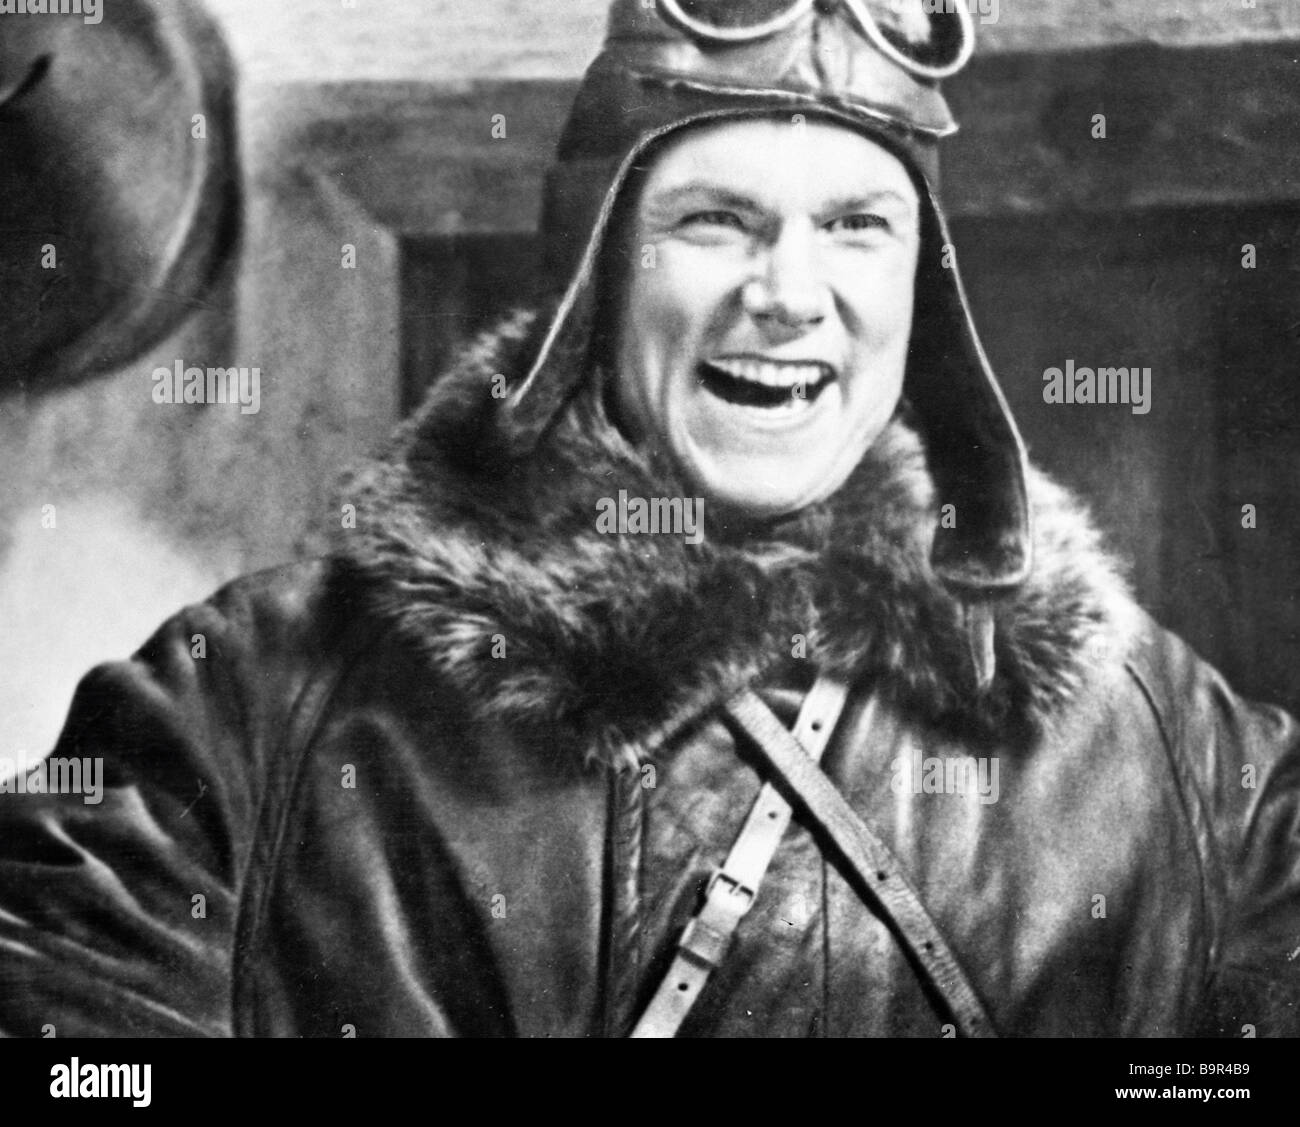 Sergei Stolyarov starring in Alexander Dovzhenko s movie Aerograd - Stock Image